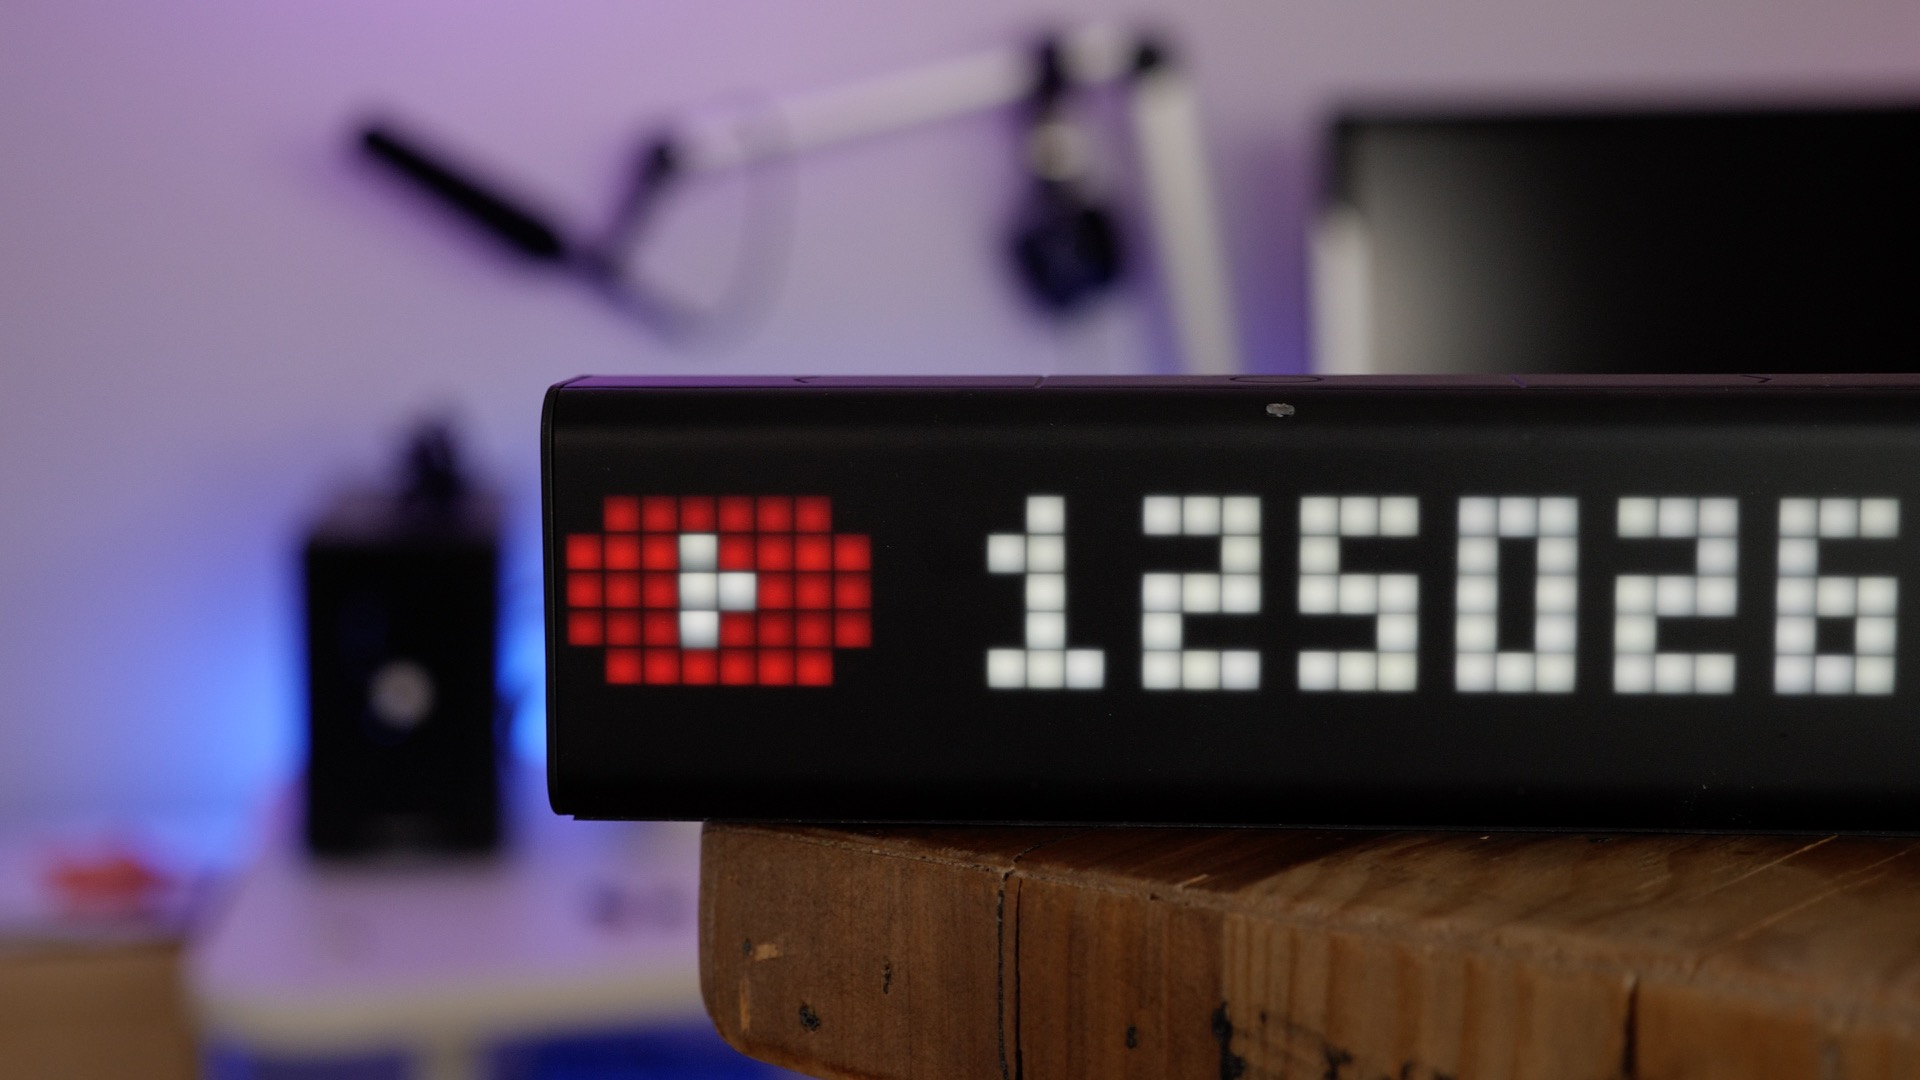 LaMetric Smart Home Wi-Fi Clock with Alexa support for $169